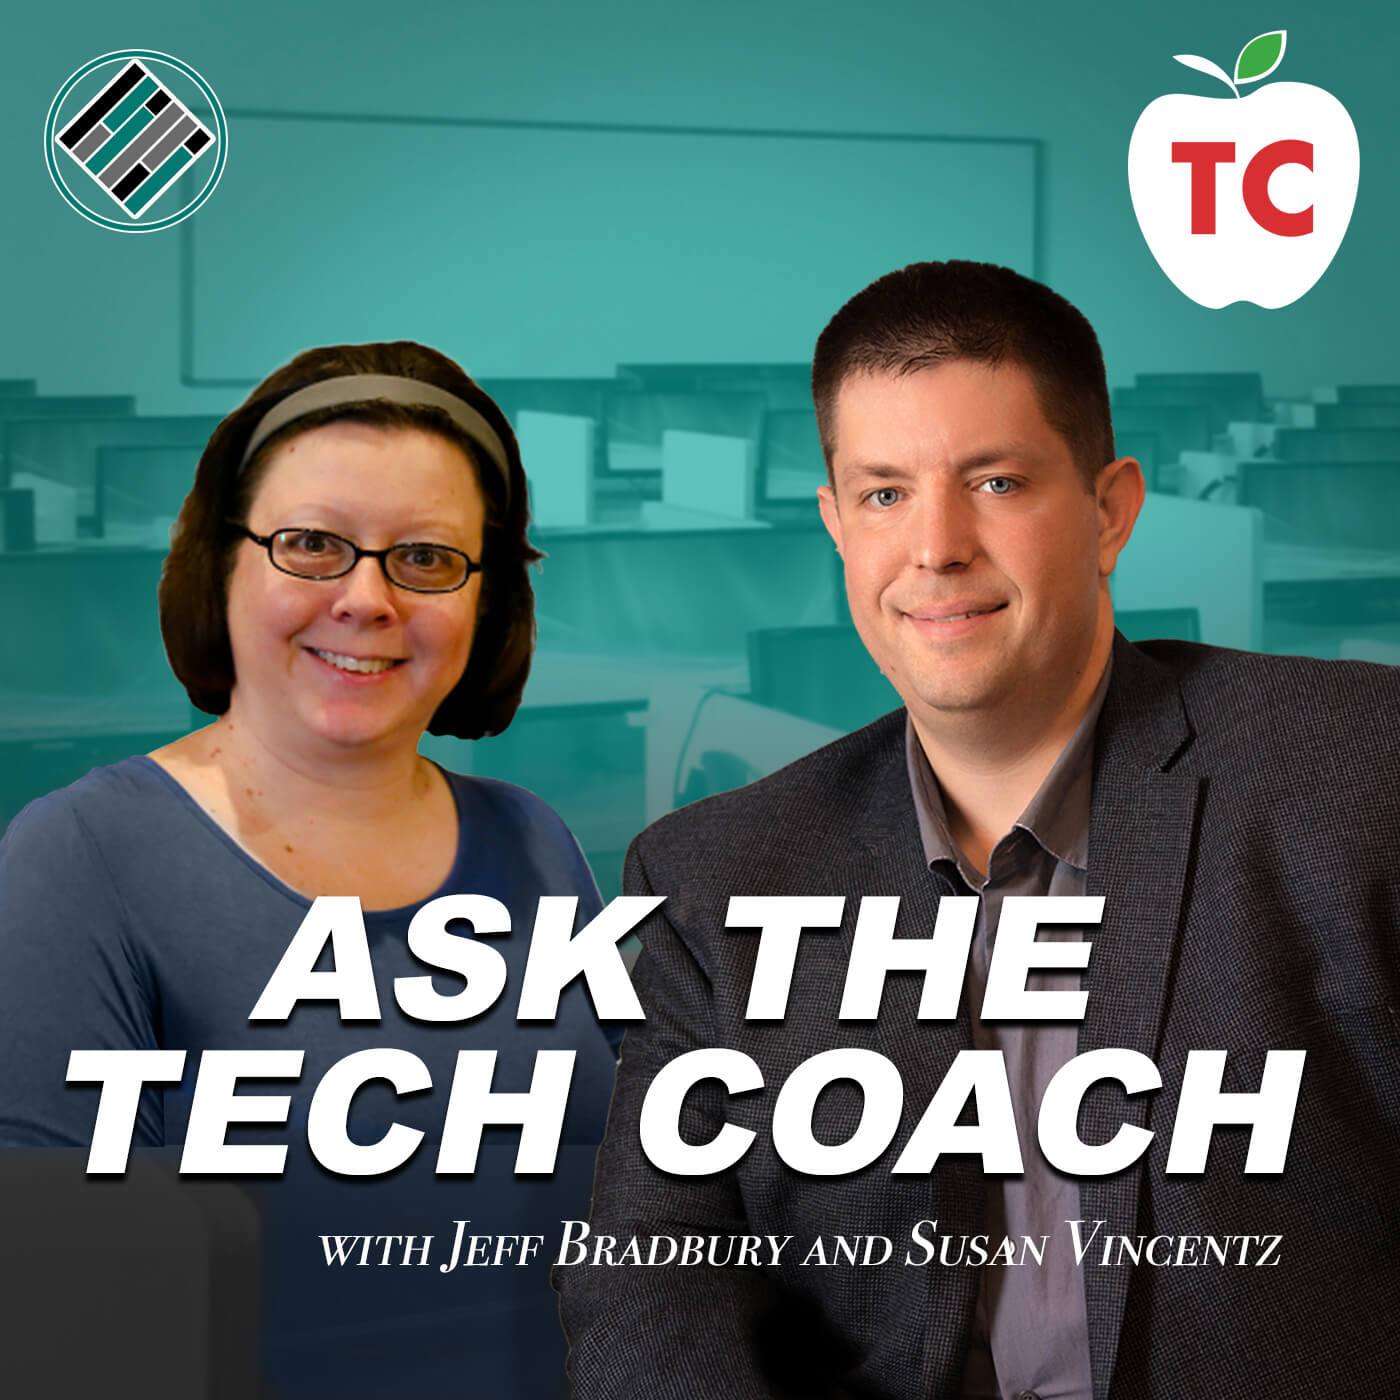 Artwork for podcast Ask The Tech Coach